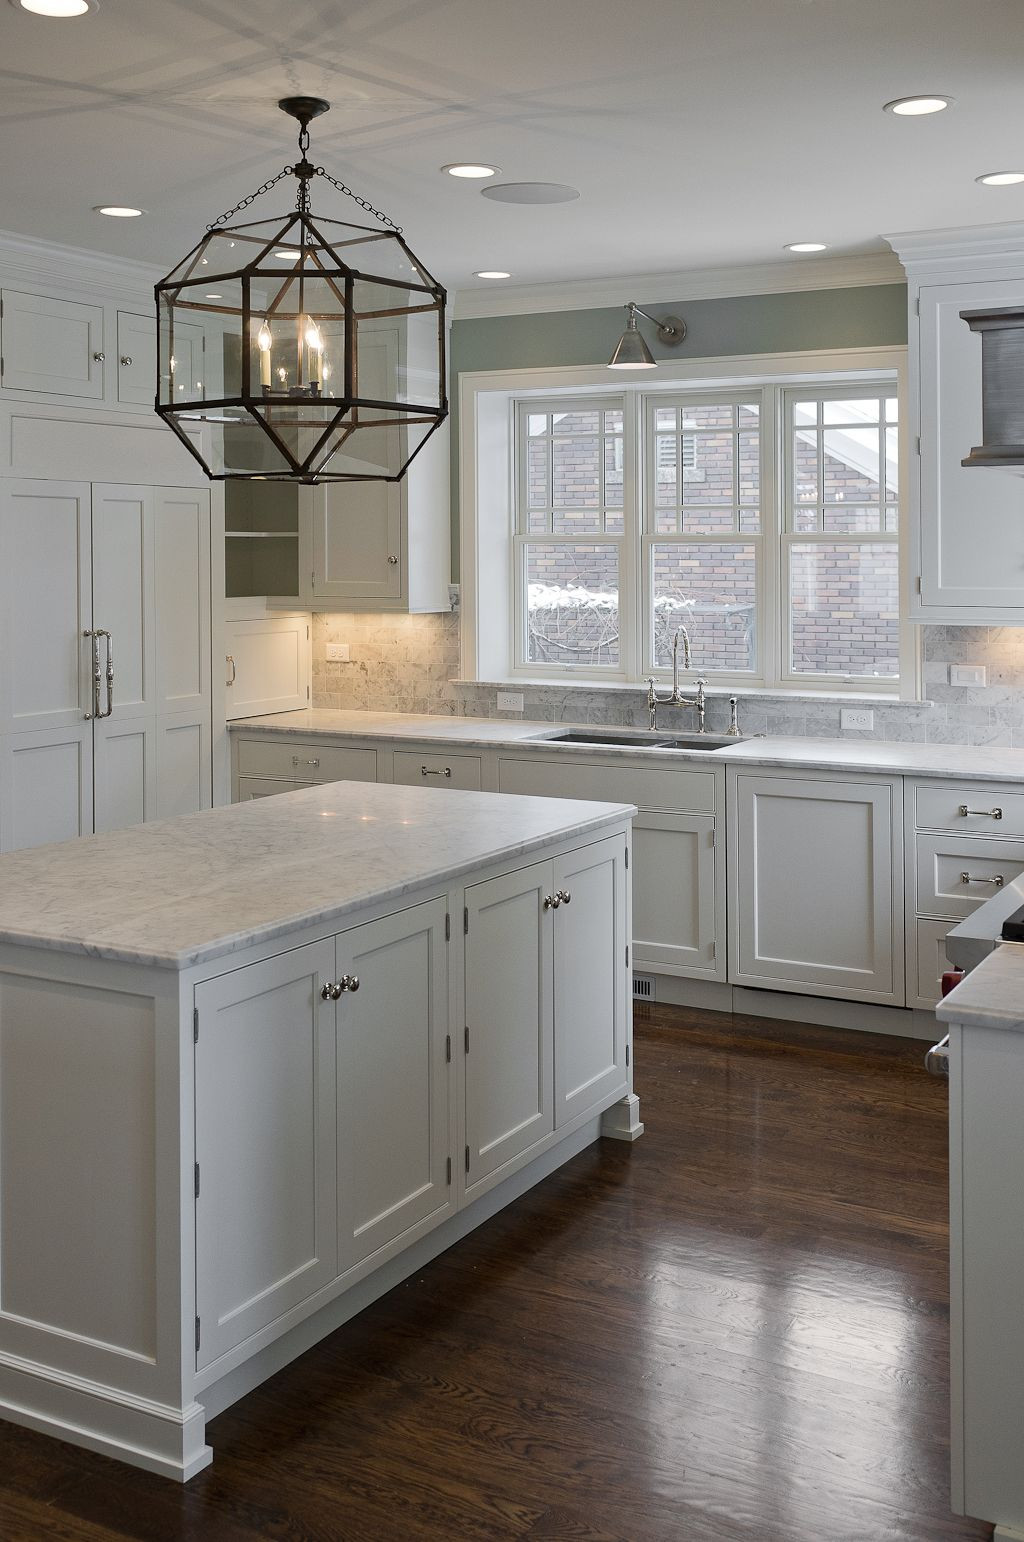 hardwood floor color choices of 30 spectacular white kitchens with dark wood floors kitchen dining inside dark floorswhite cabinets white granite silver knobs and gray paint wall